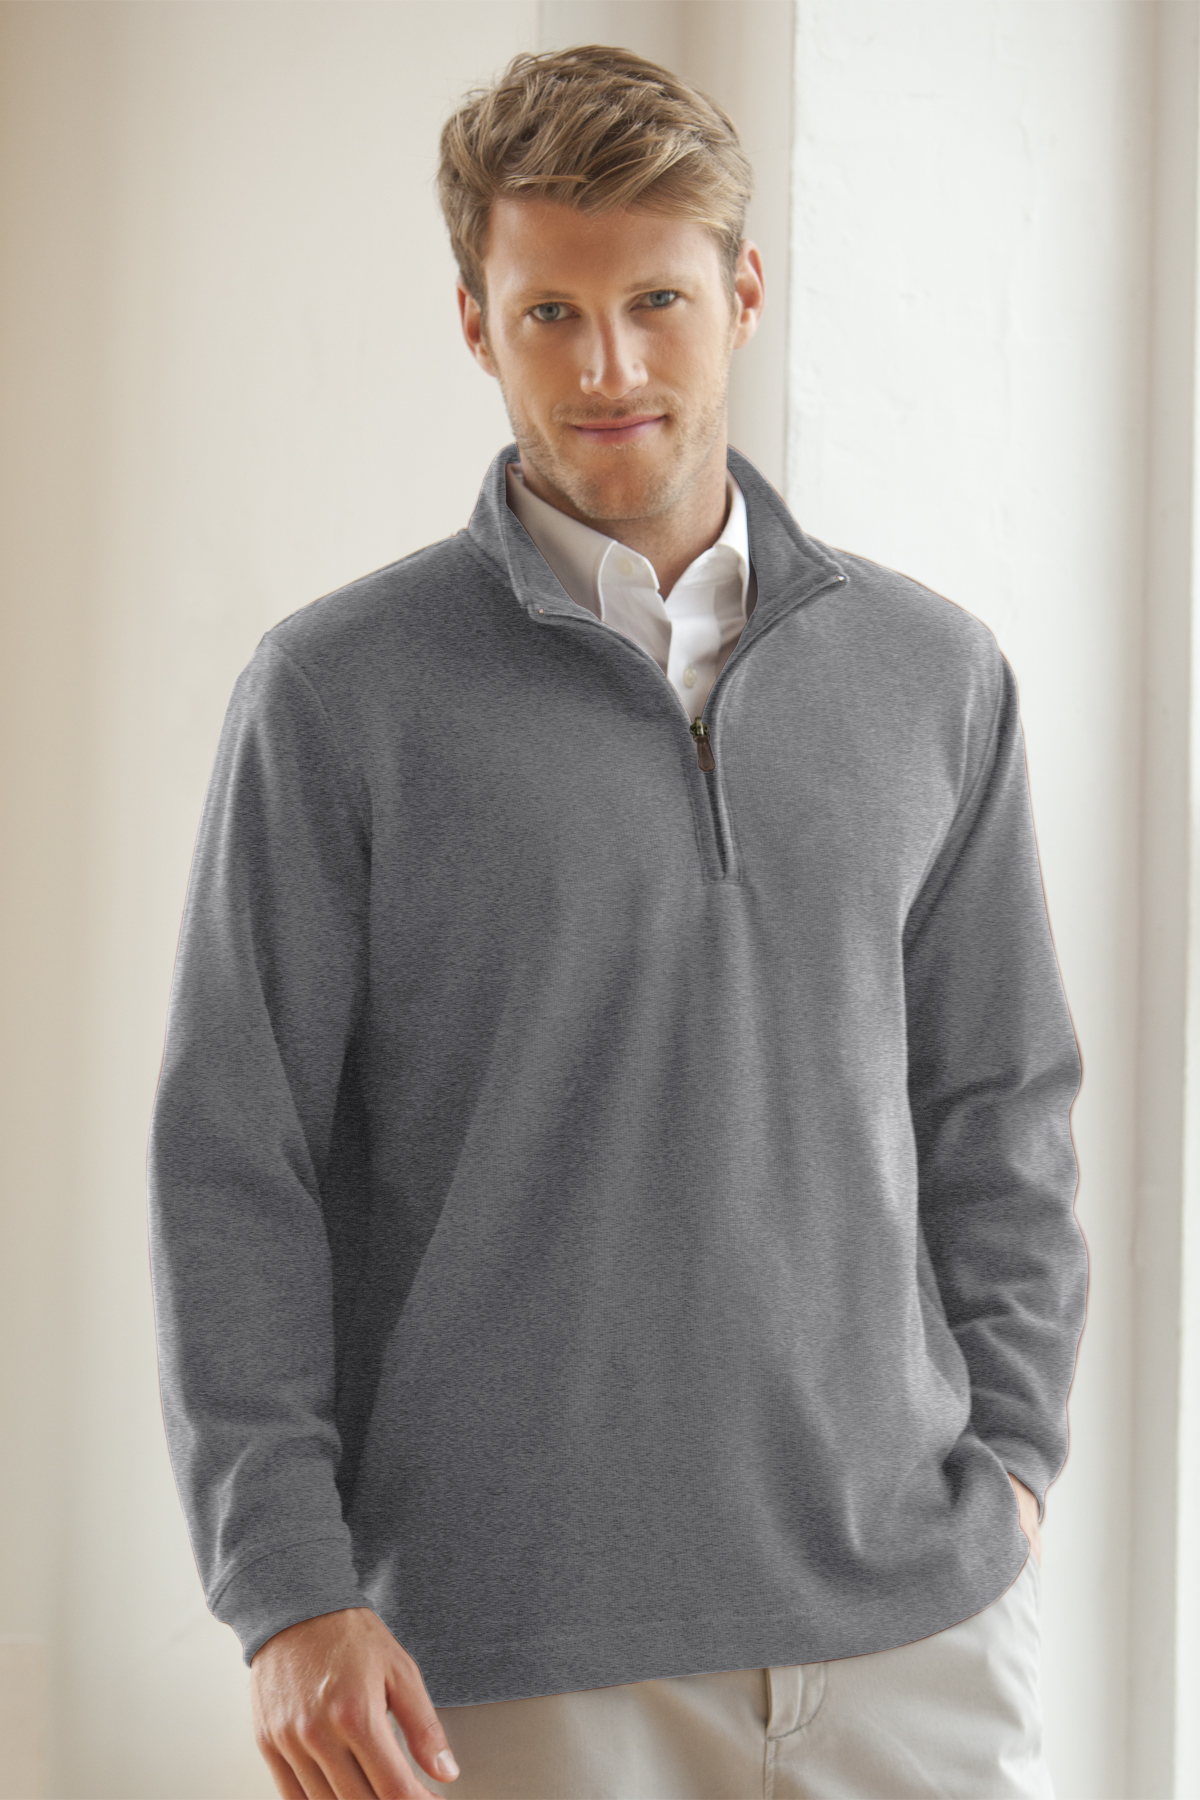 Vantage 9175 - One Quarter Zip Flat-Back Rib Pullover $24.83 ...